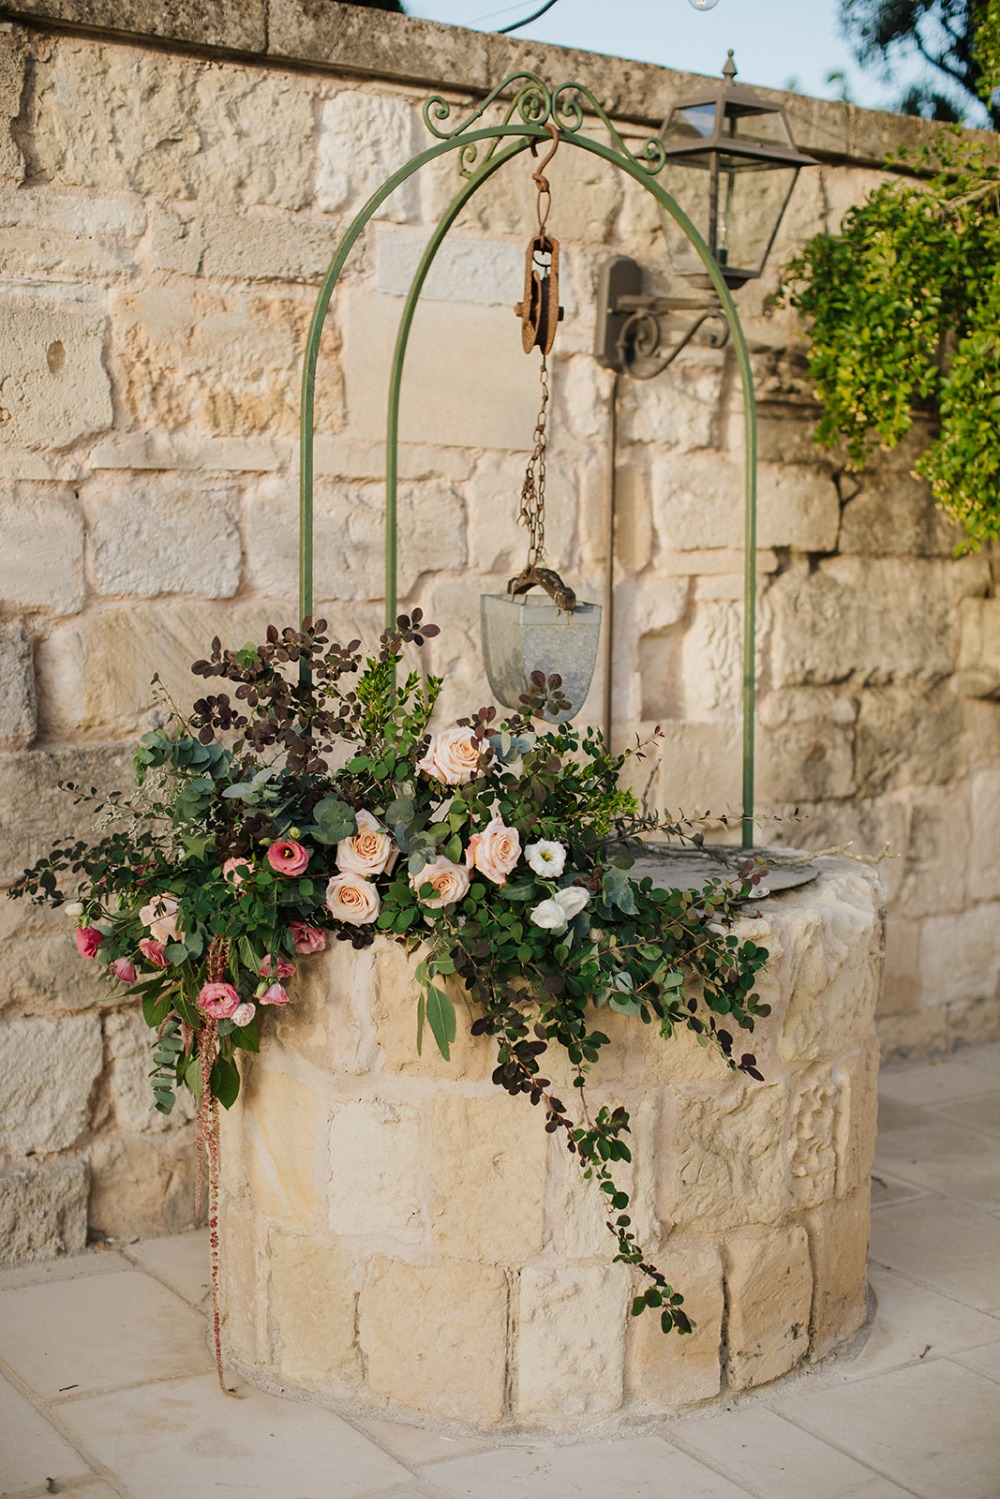 overgrown wedding flower decor